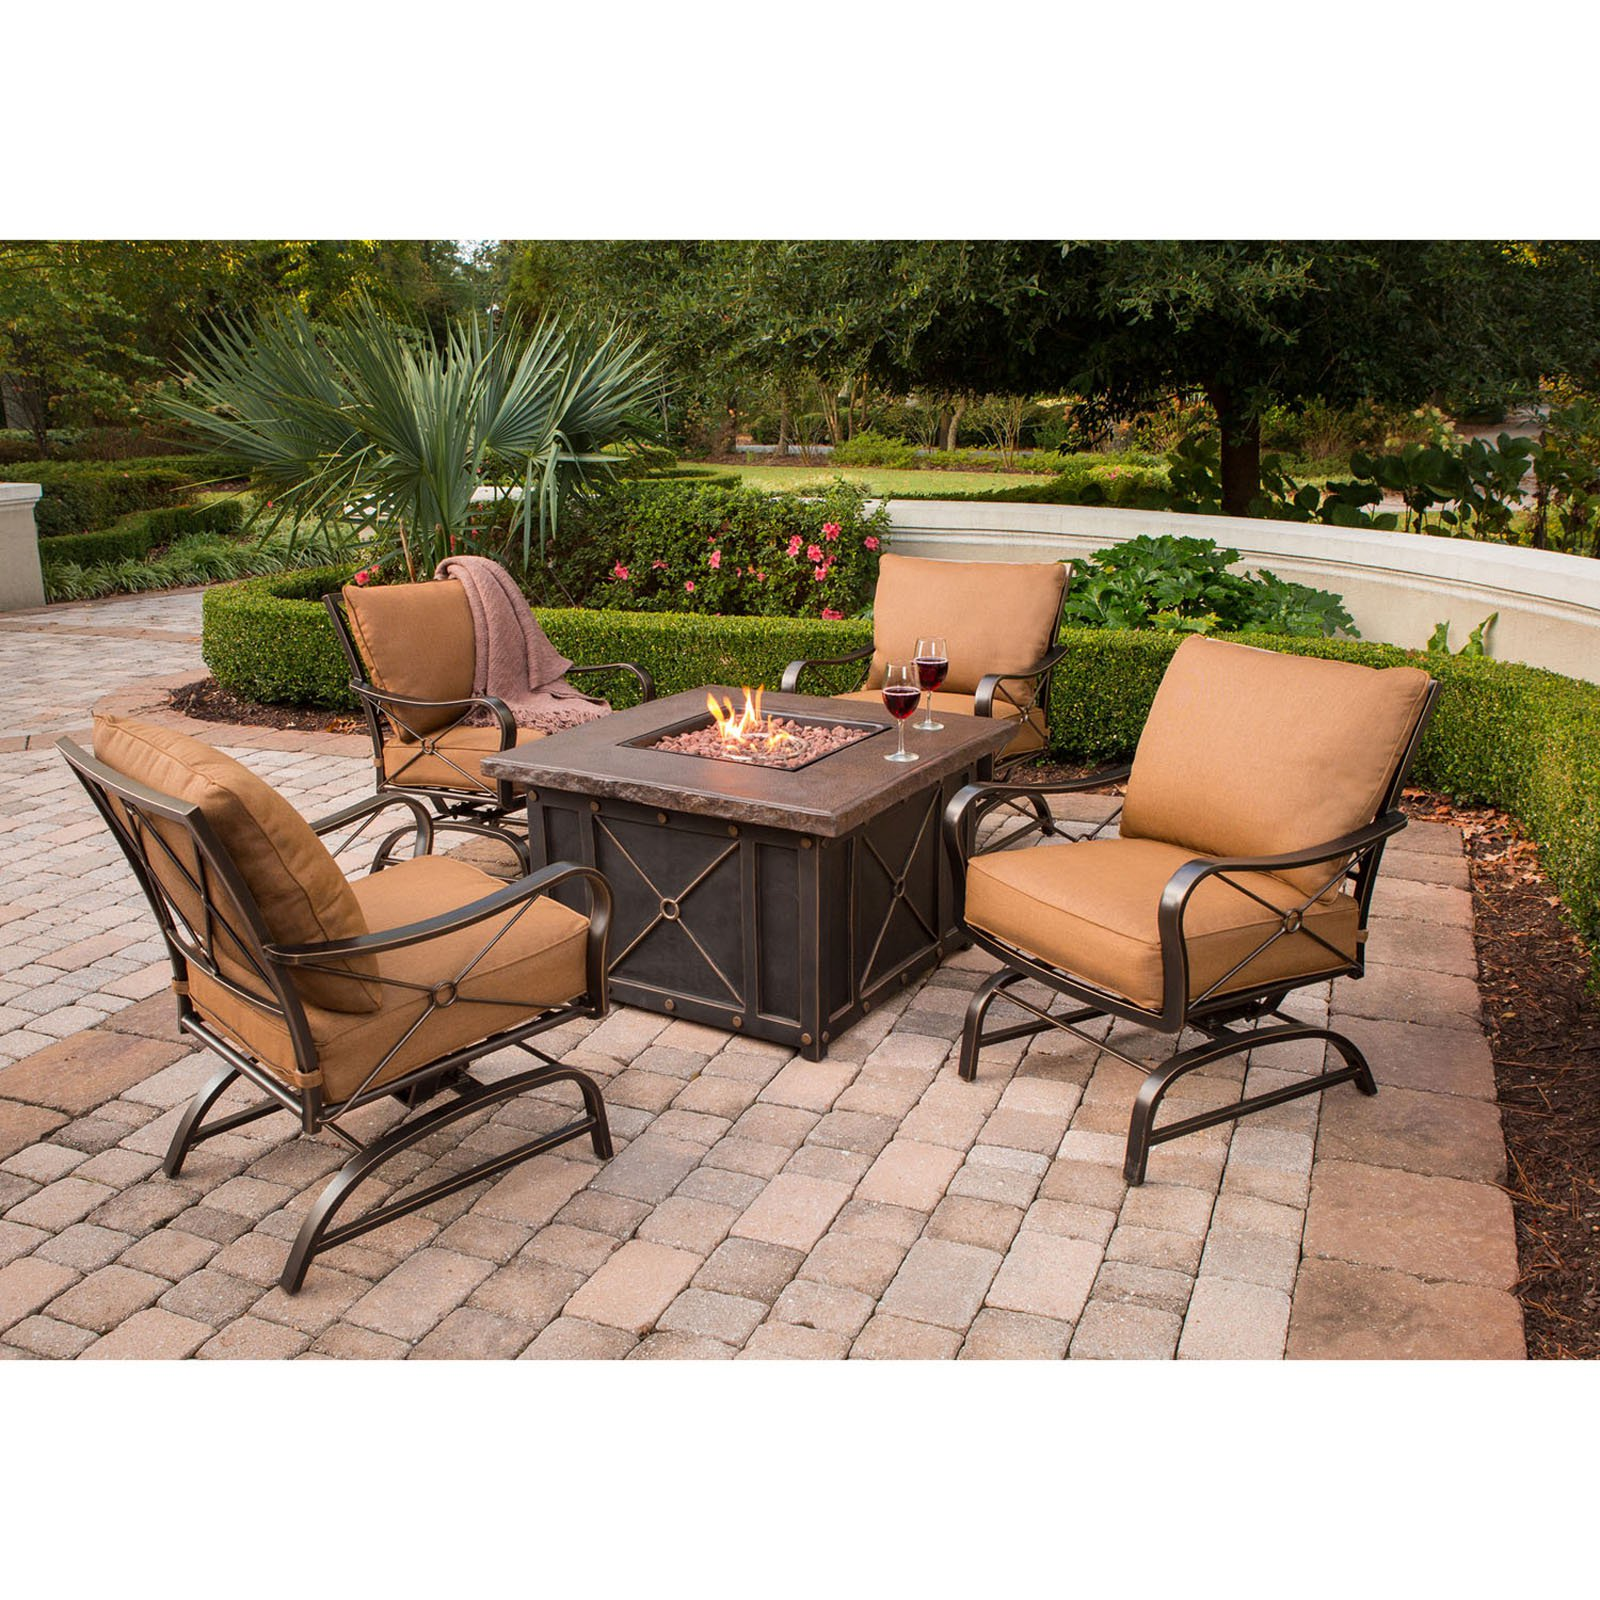 Product Image Hanover Outdoor Summer Nights Aluminum 5 Piece Lounge Set  With DuraStone Fire Pit Table,